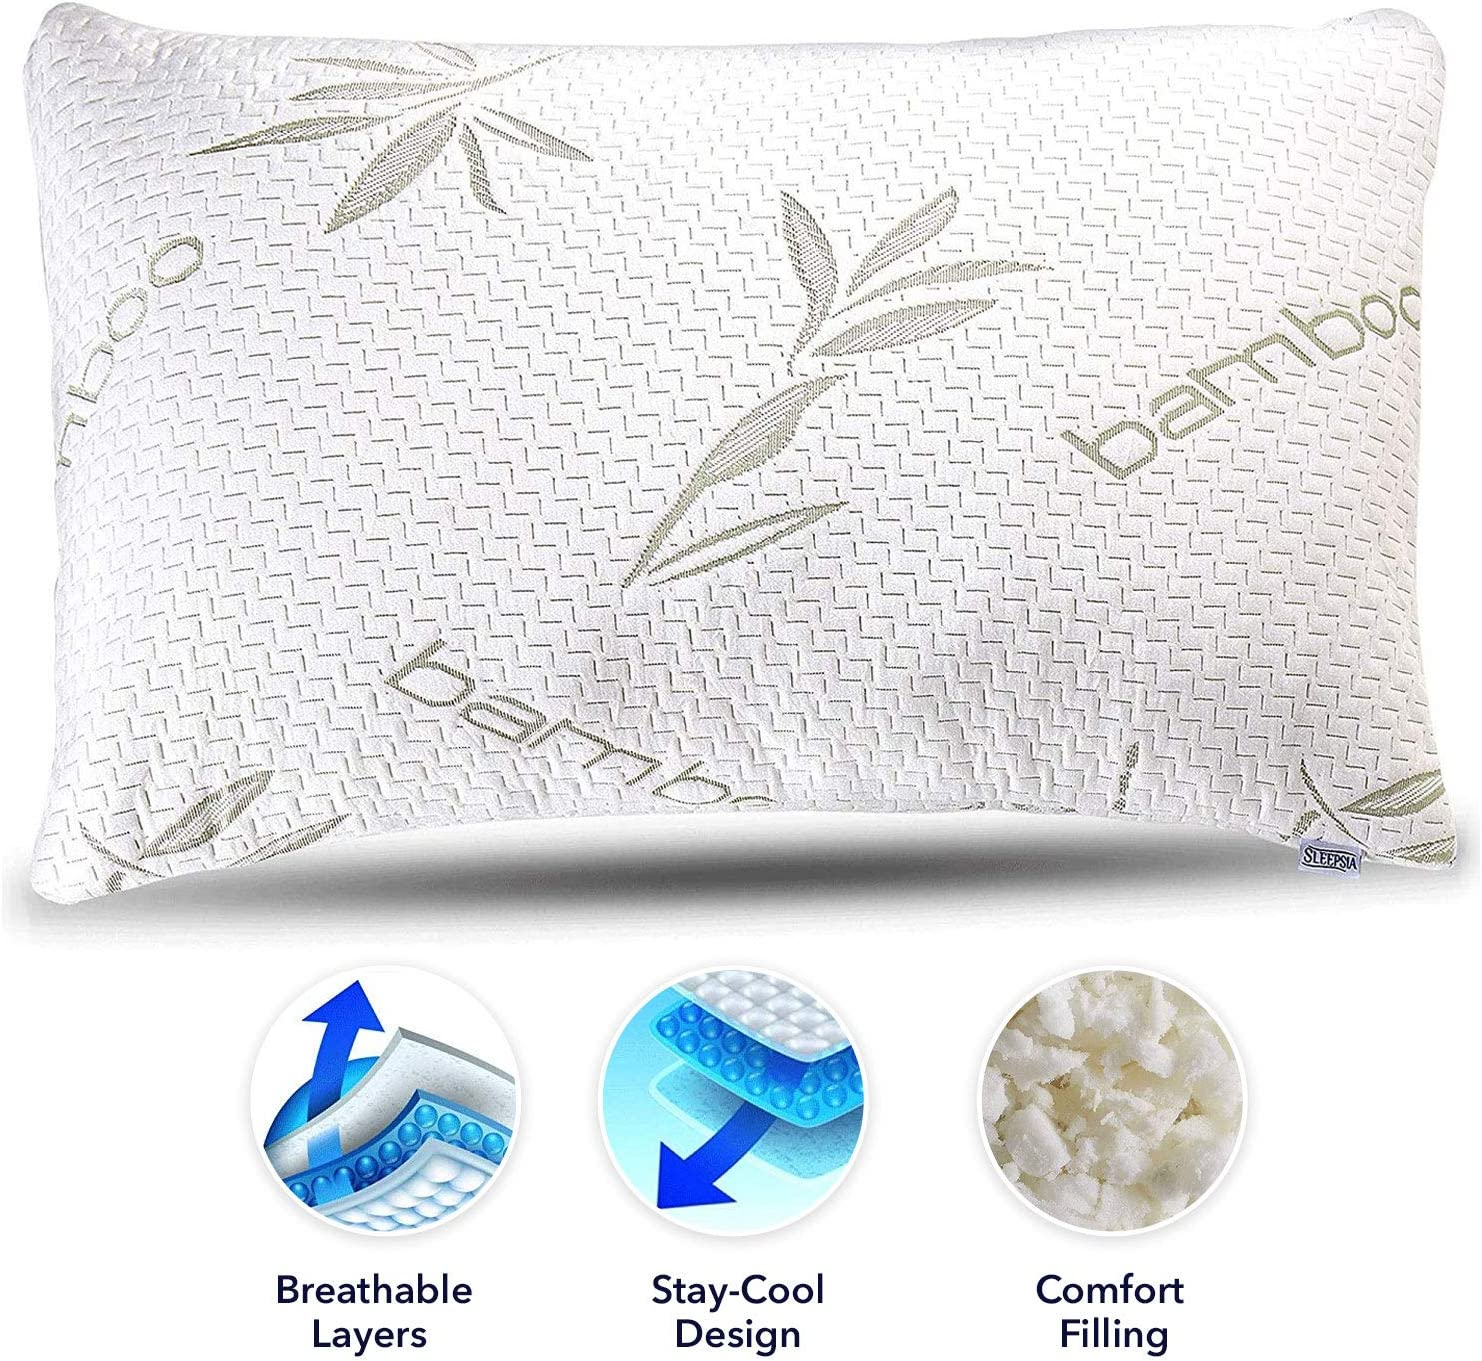 Sleepsia Bamboo Pillow - Premium Pillows for Sleeping - Memory Foam Pillow with Washable Case - Queen Size Pillow (Queen)